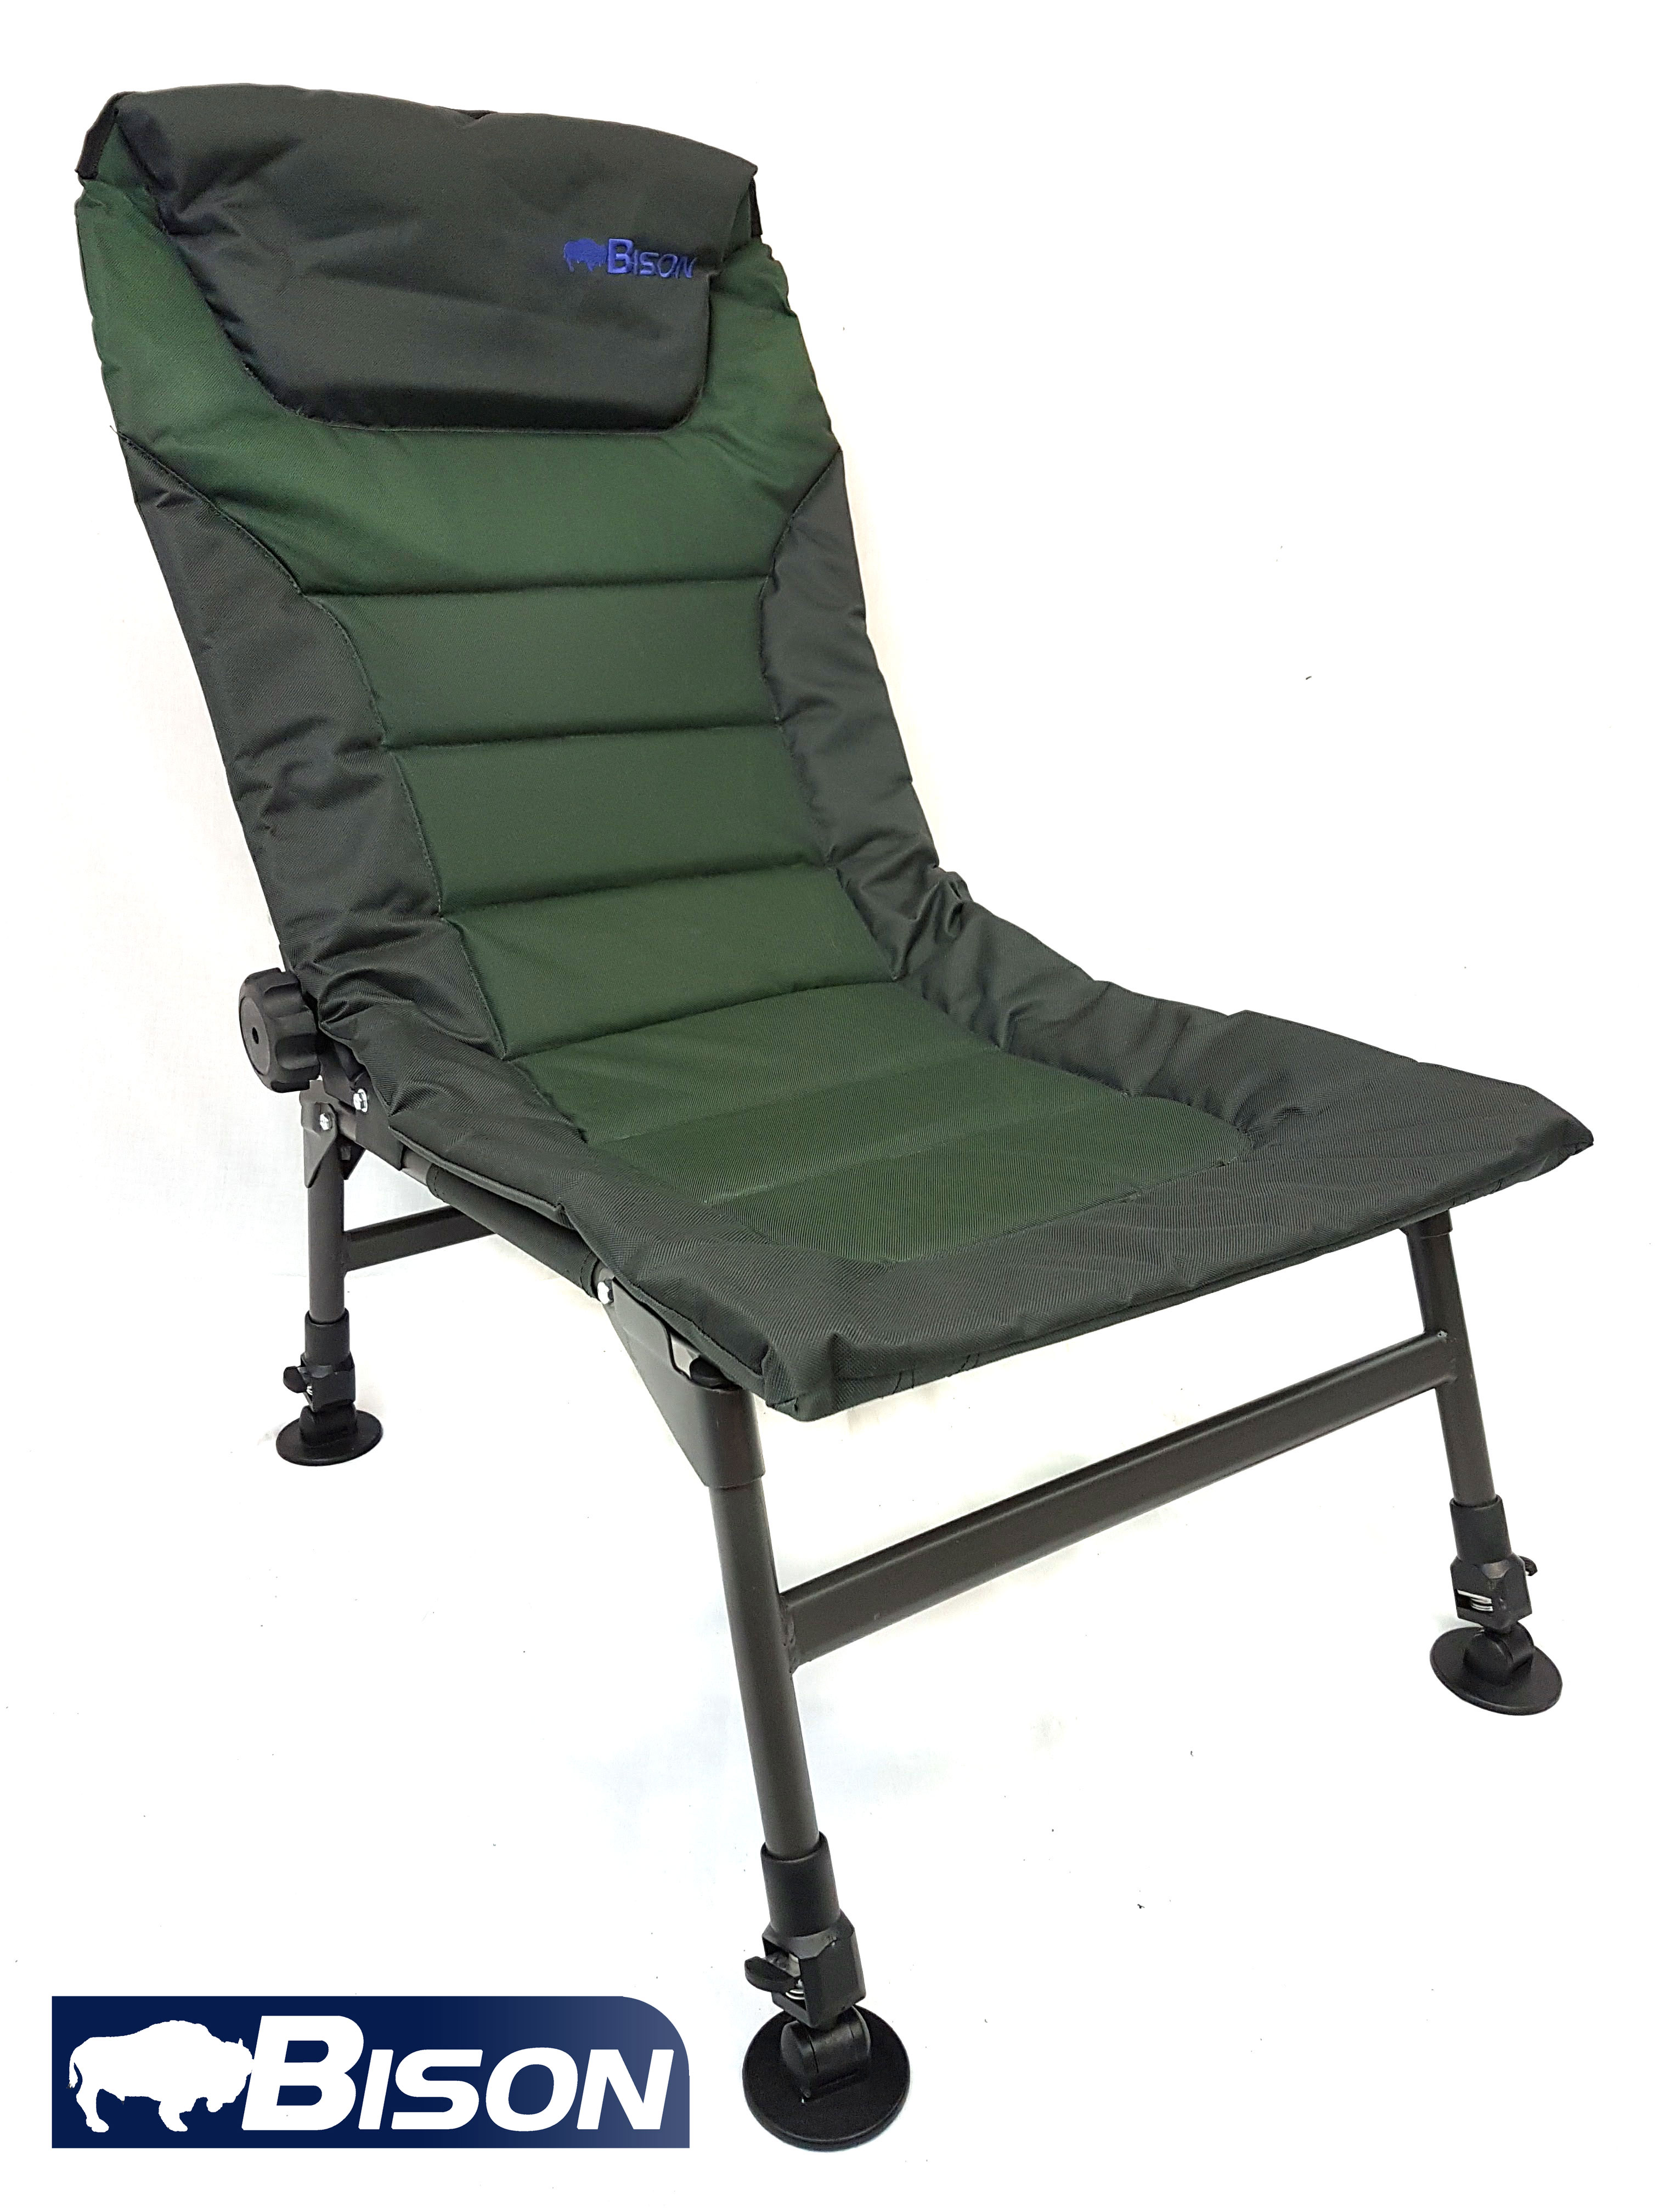 fishing chair uk black plastic garden chairs adjustable legs and back recliner 43 free